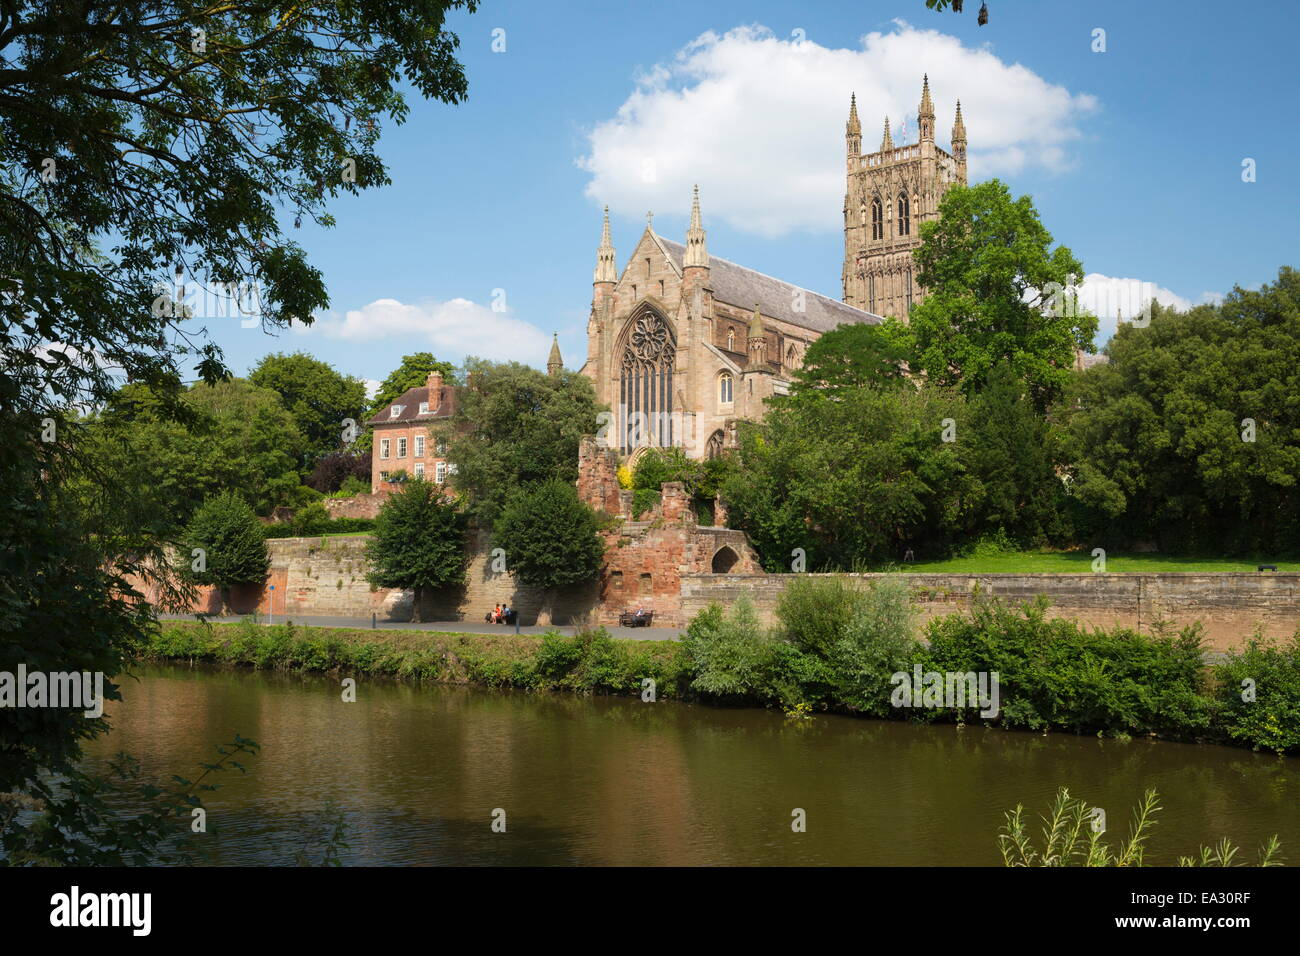 Worcester Cathedral and the River Severn, Worcester, Worcestershire, England, United Kingdom, Europe - Stock Image